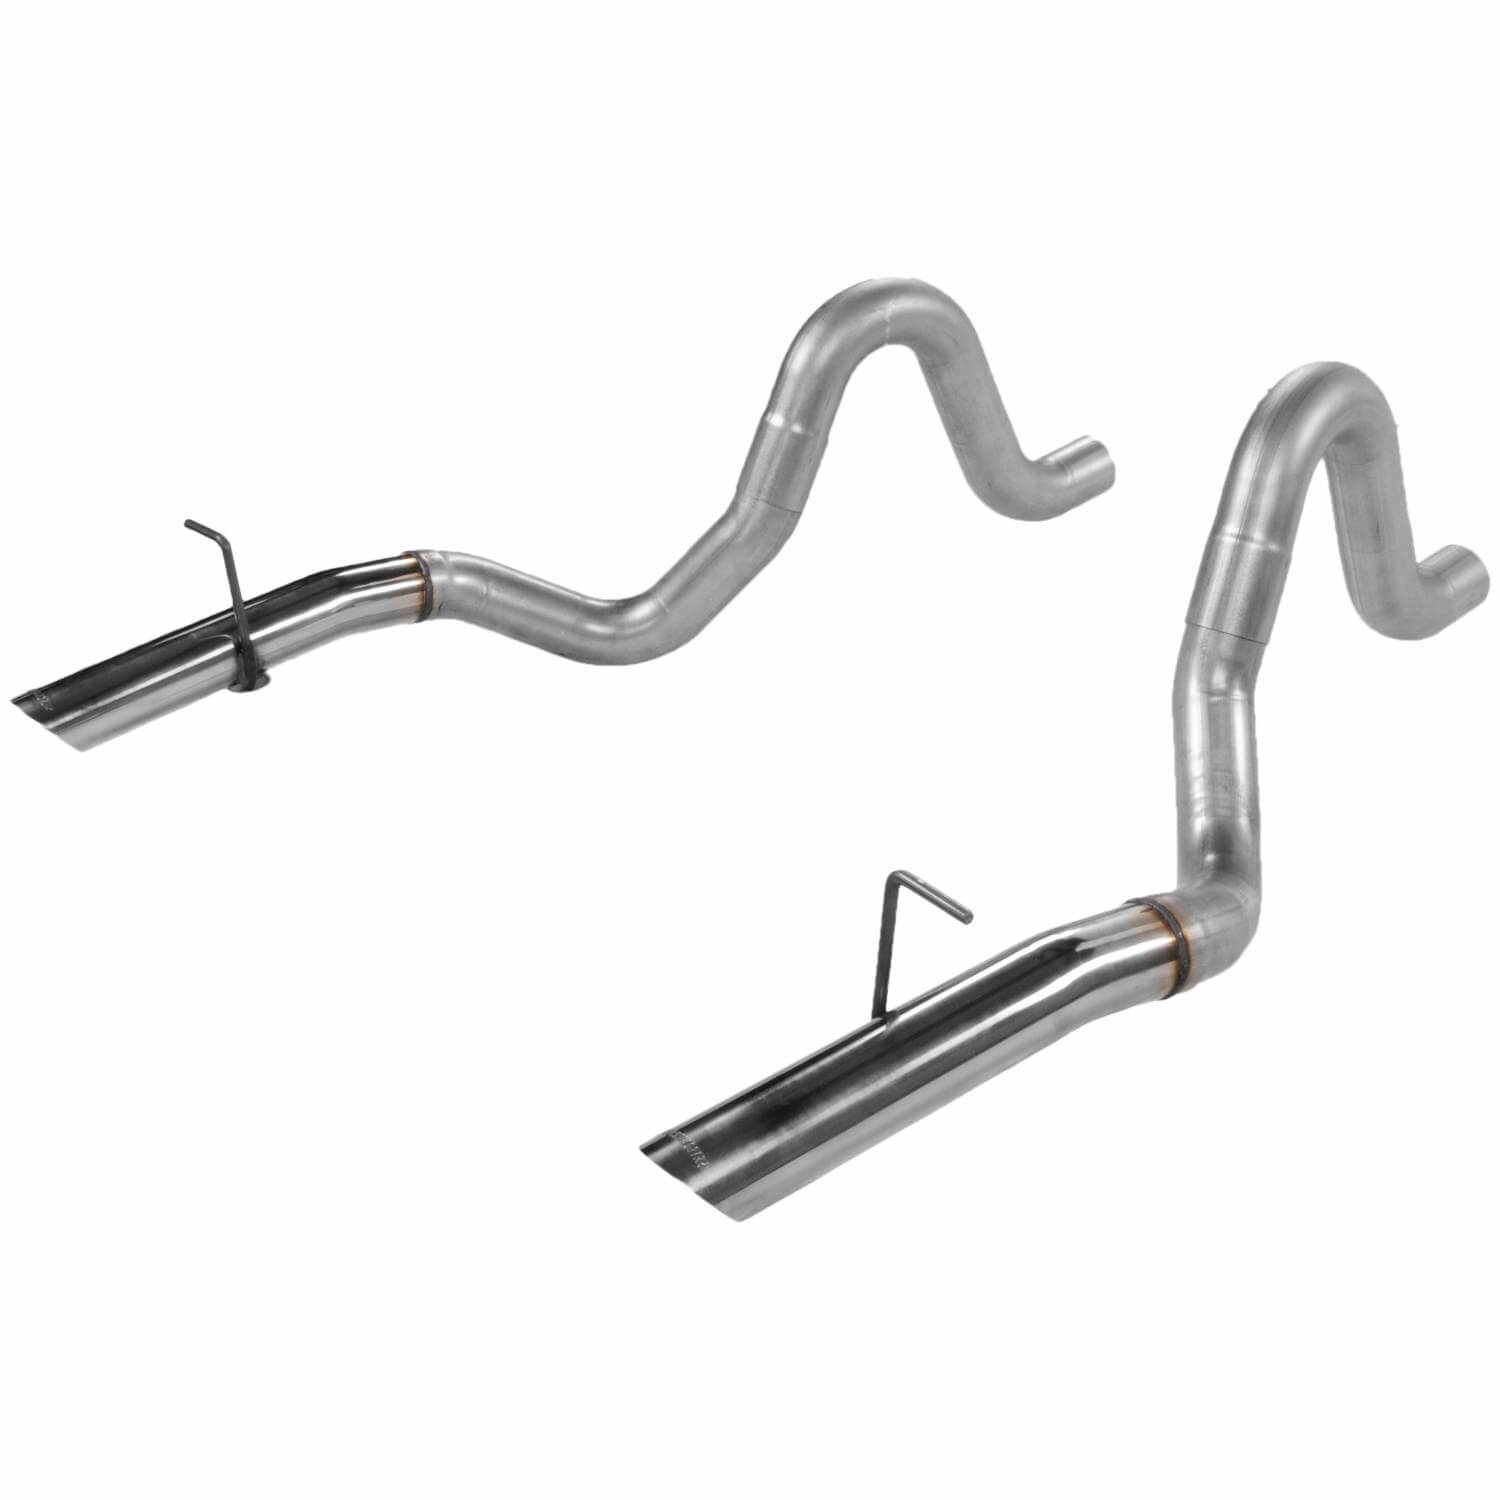 Flowmaster 15820 Tailpipe Set Fits 86-93 Mustang